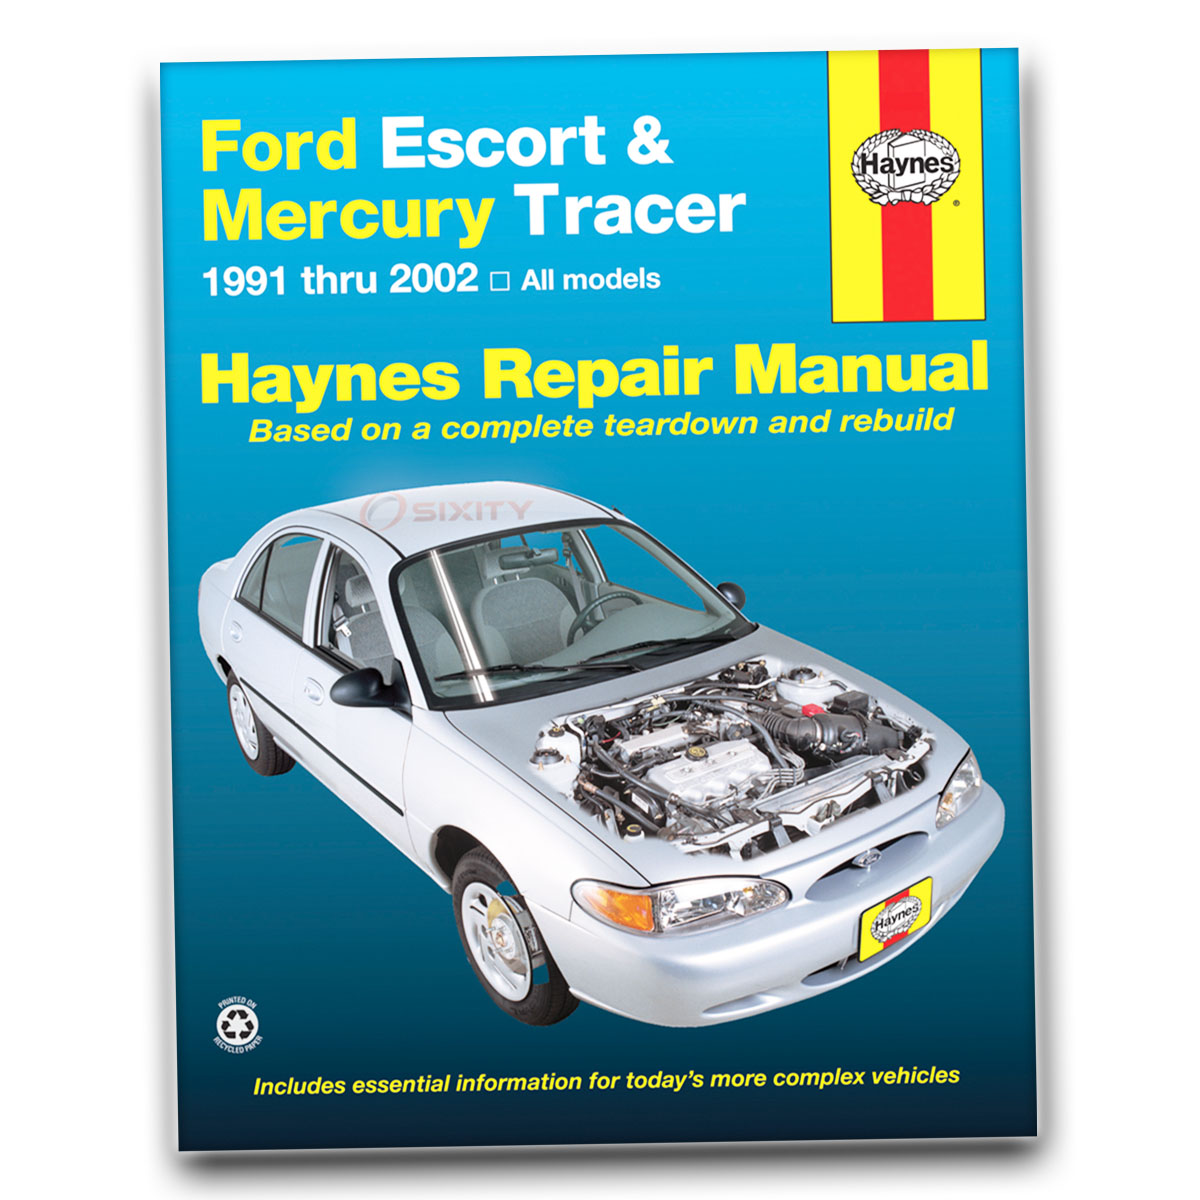 ford escort haynes repair manual lx sport gt zx2 s r hot coupe lx e rh ebay com 2013 Ford Mustang Repair Manual 2013 Ford Mustang Repair Manual